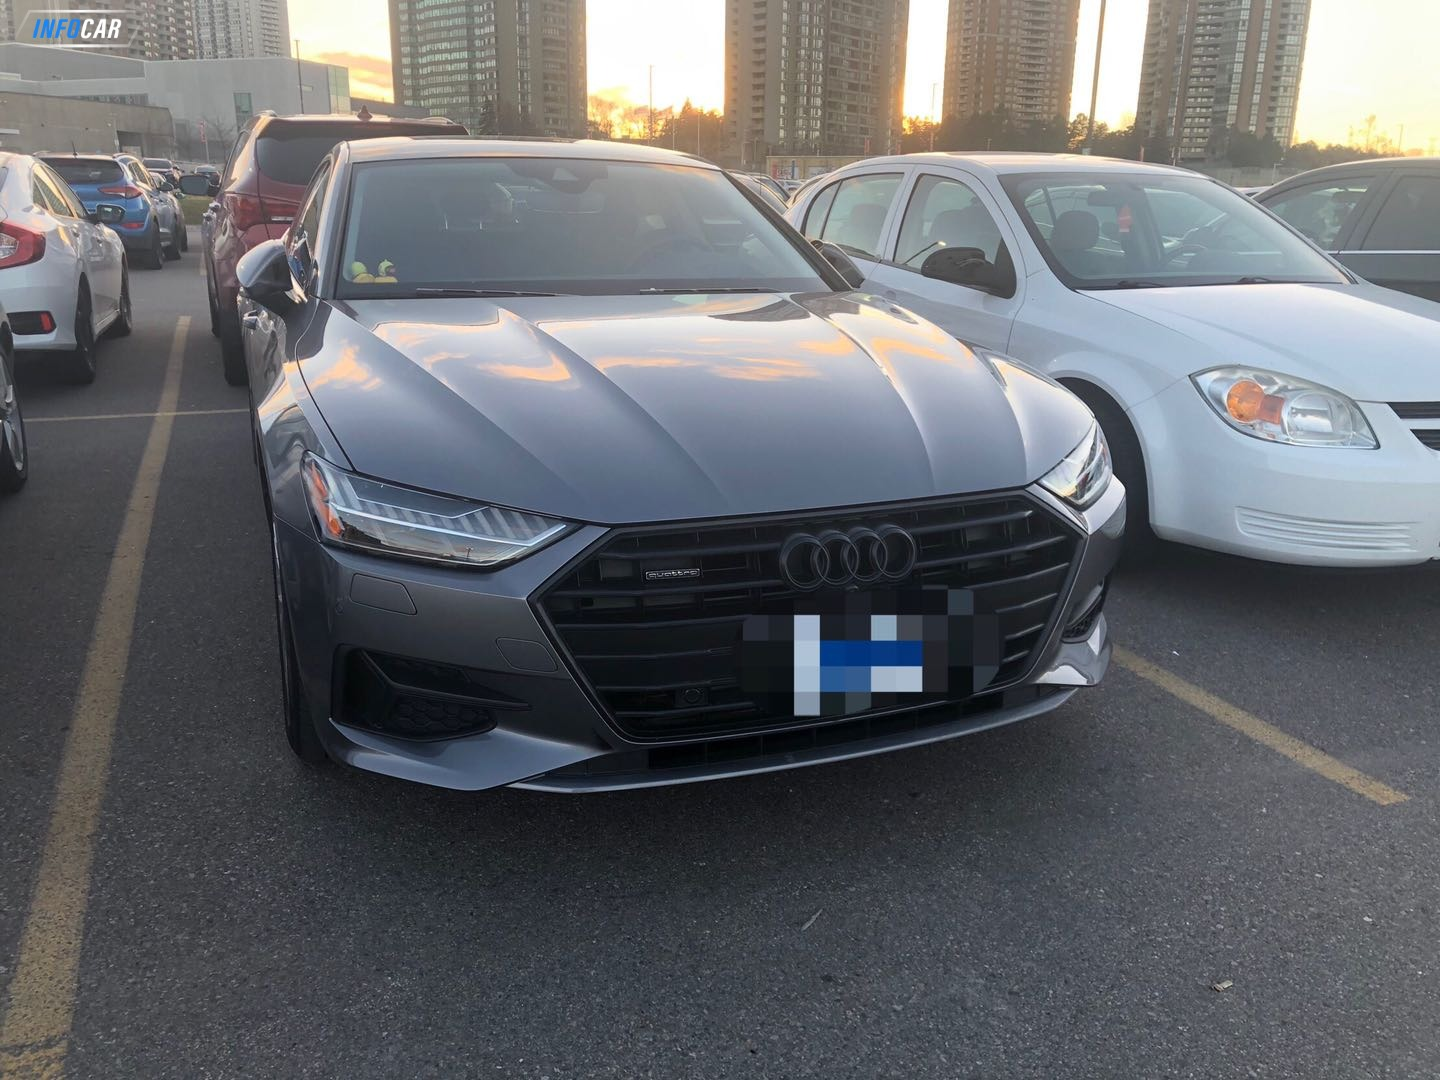 2019 Audi A7  (可刀) - INFOCAR - Toronto's Most Comprehensive New and Used Auto Trading Platform